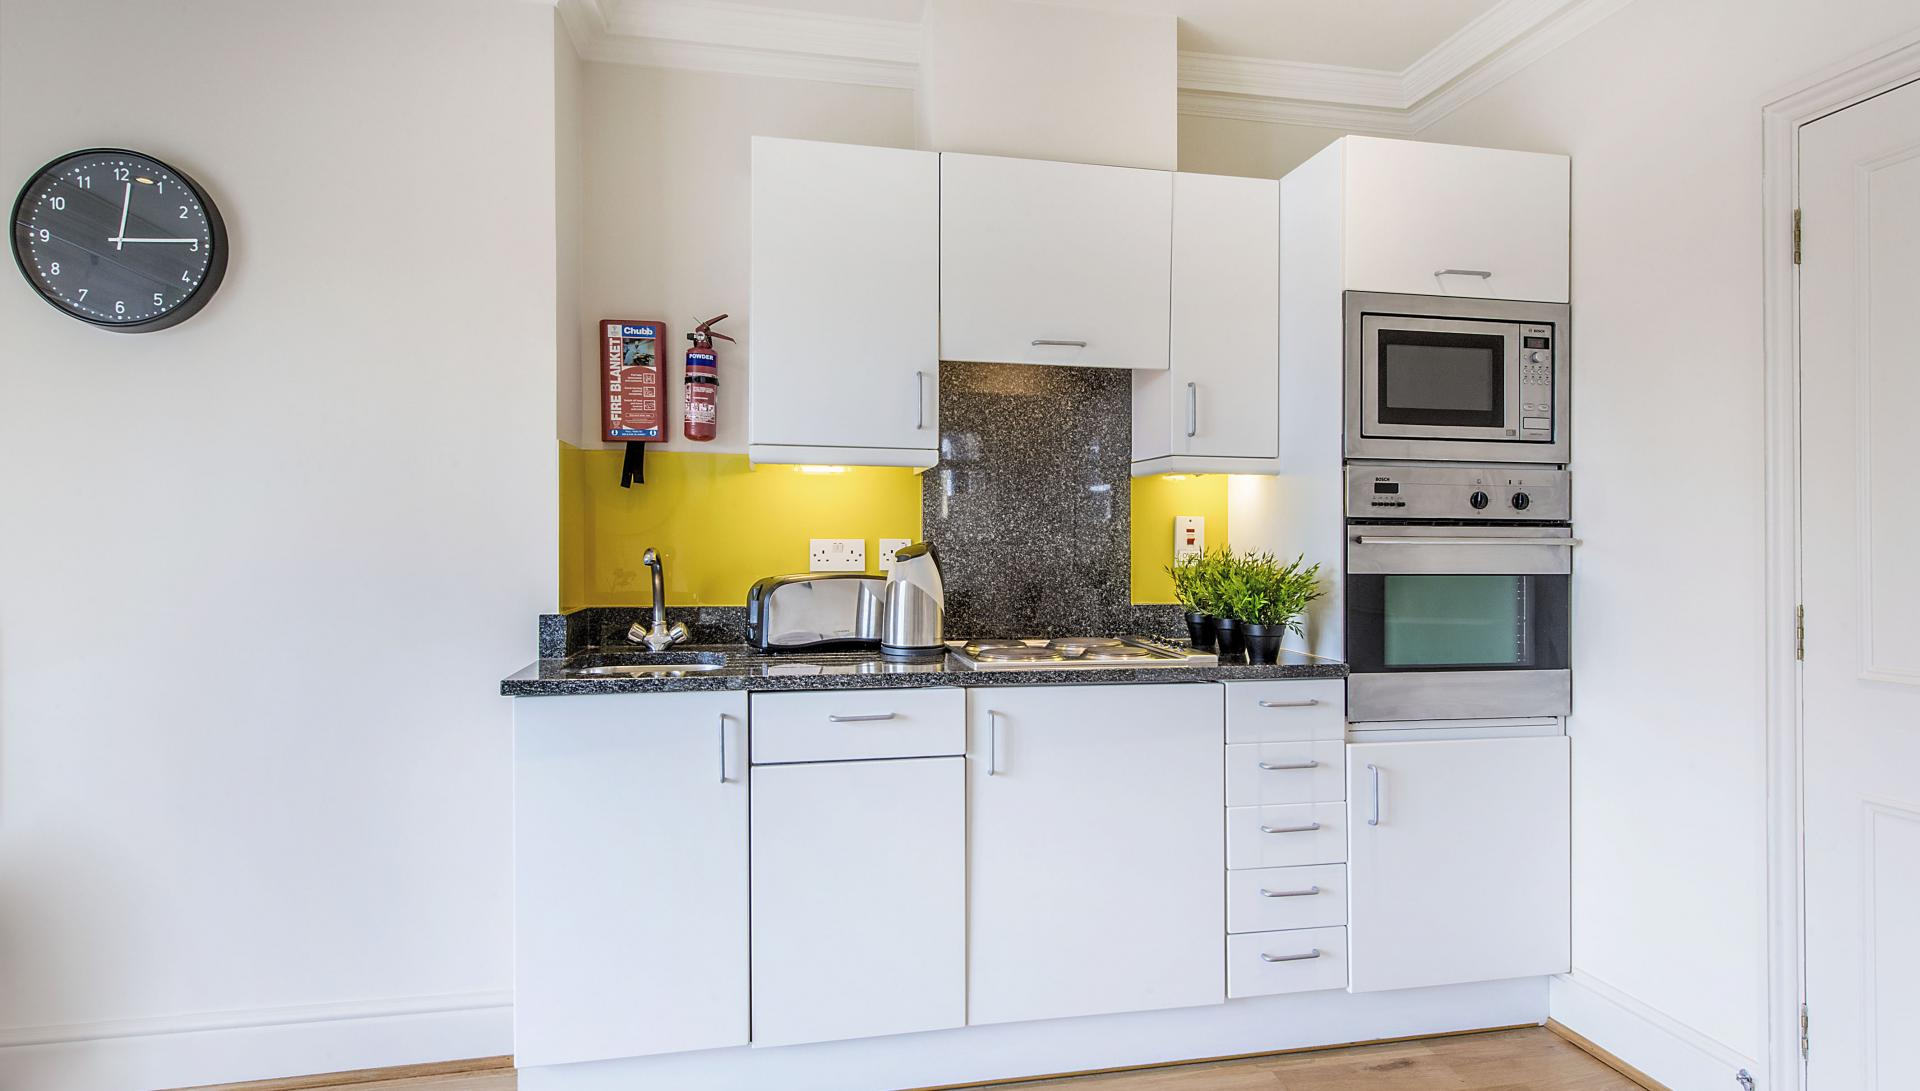 Kitchen at Draycott Apartments